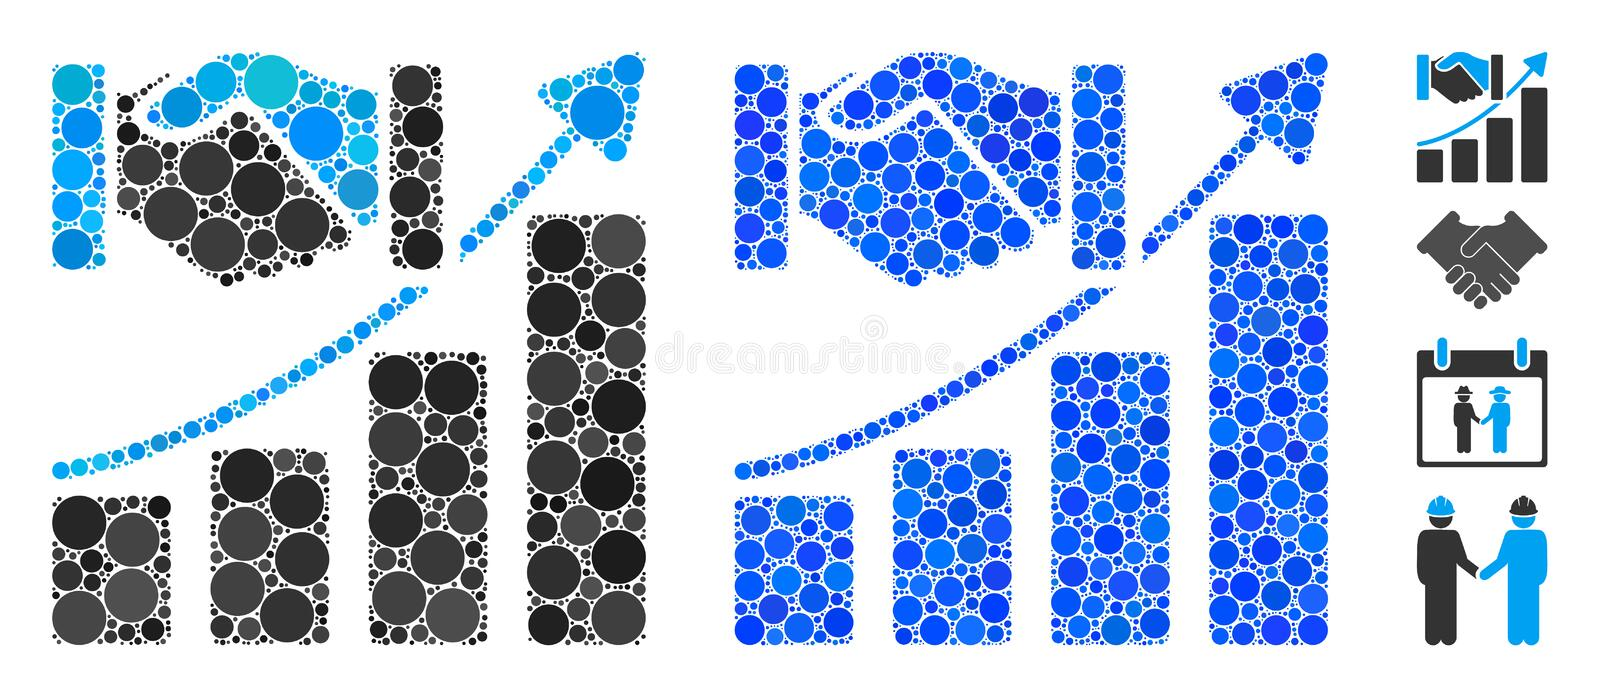 Dispersed Pixelated Halftone Roulette Dealer Icon Stock